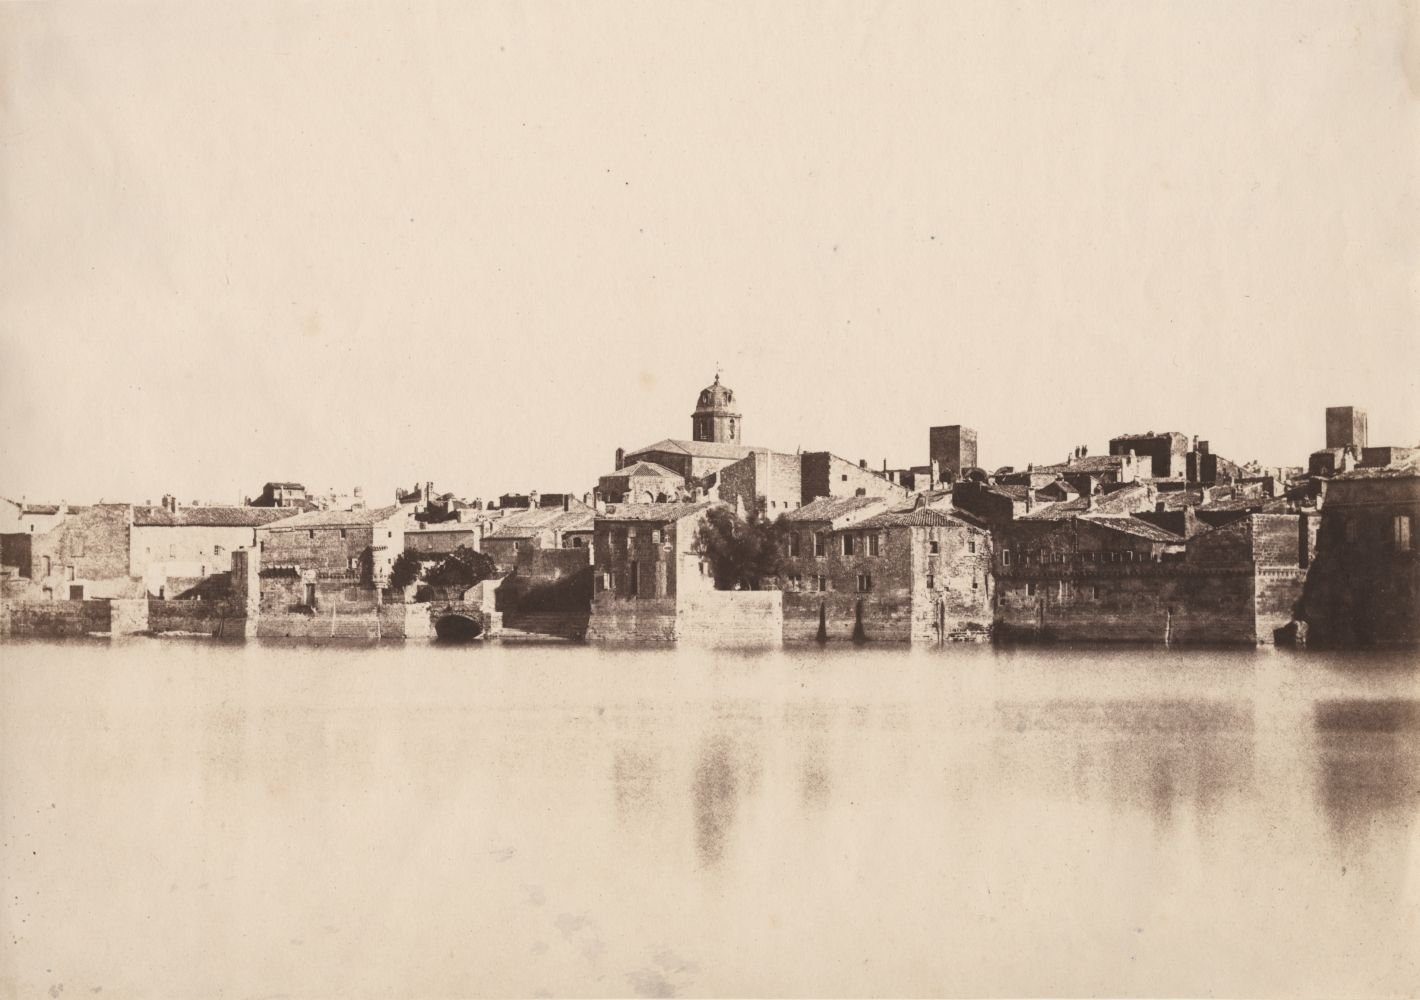 """Charles NÈGRE (French, 1820-1880) View from the banks of the Rhône """"Arles"""", 1852 Salt print from a waxed paper negative 22.9 x 32.5 cm Inscribed """"E-16"""" and """"No 86"""" in pencil on verso"""